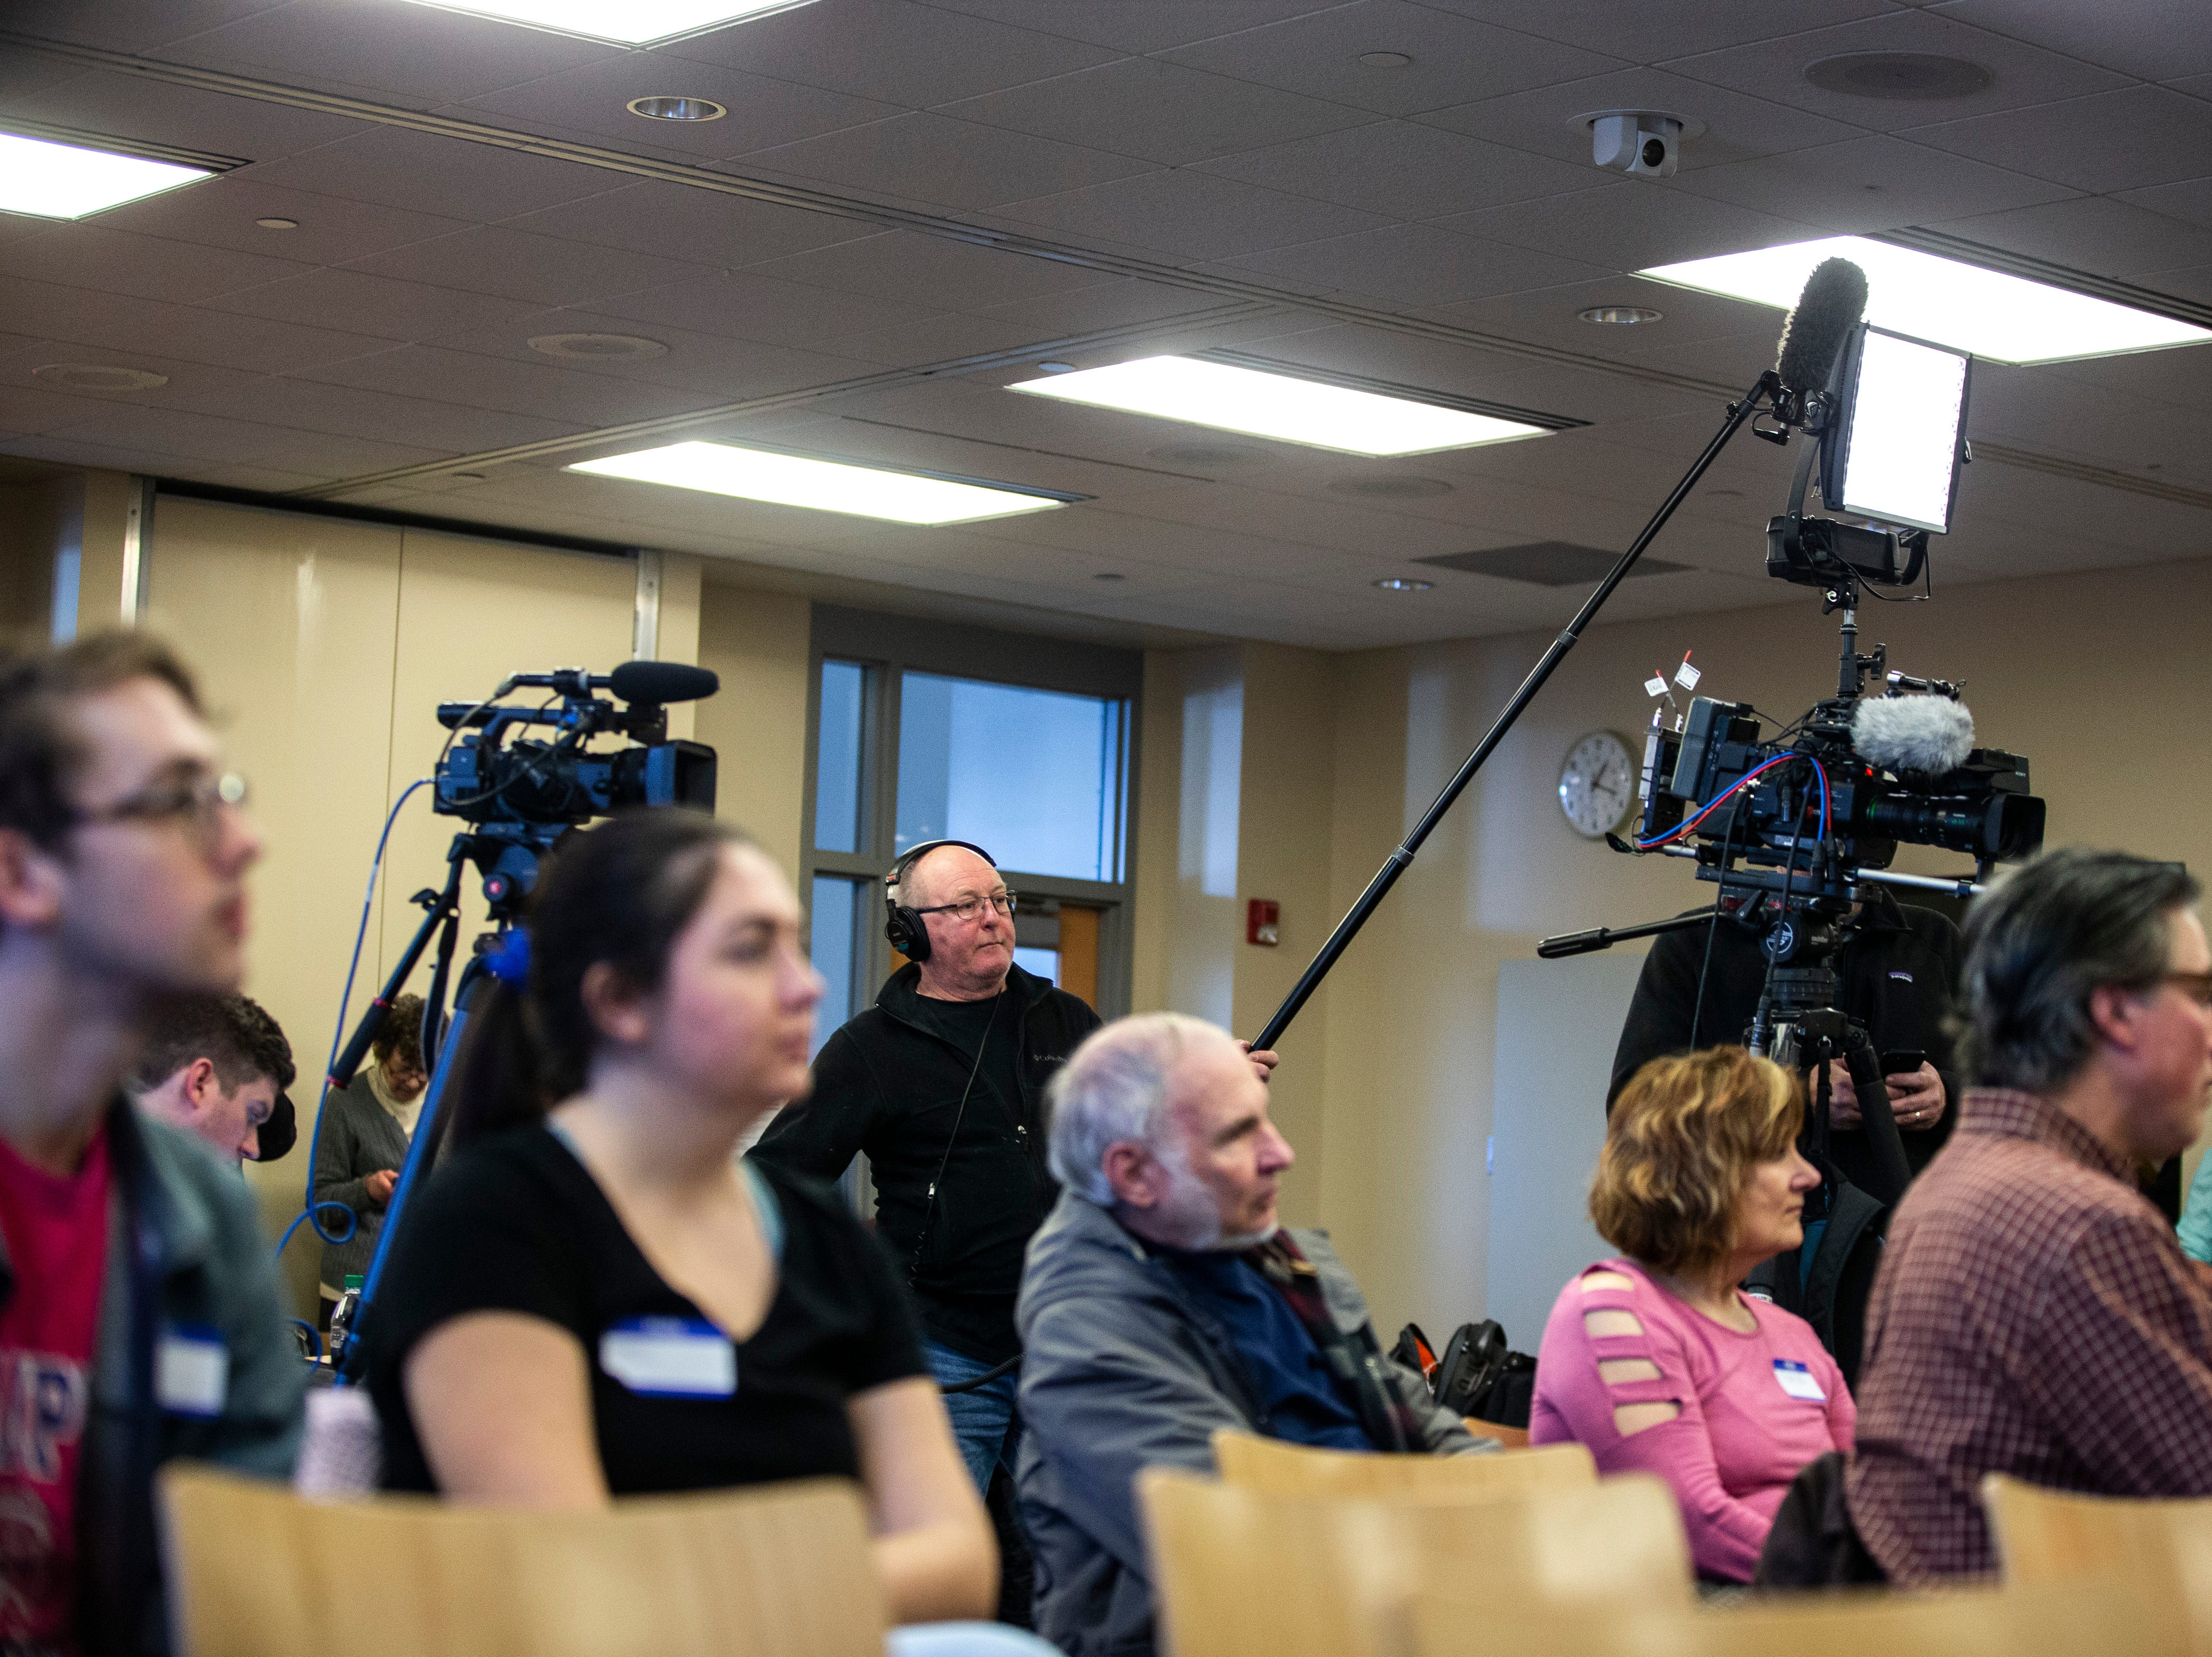 Television crews work during a Working Hero Iowa event on Monday, Feb. 18, 2019 at the Public Library in Iowa City, Iowa.